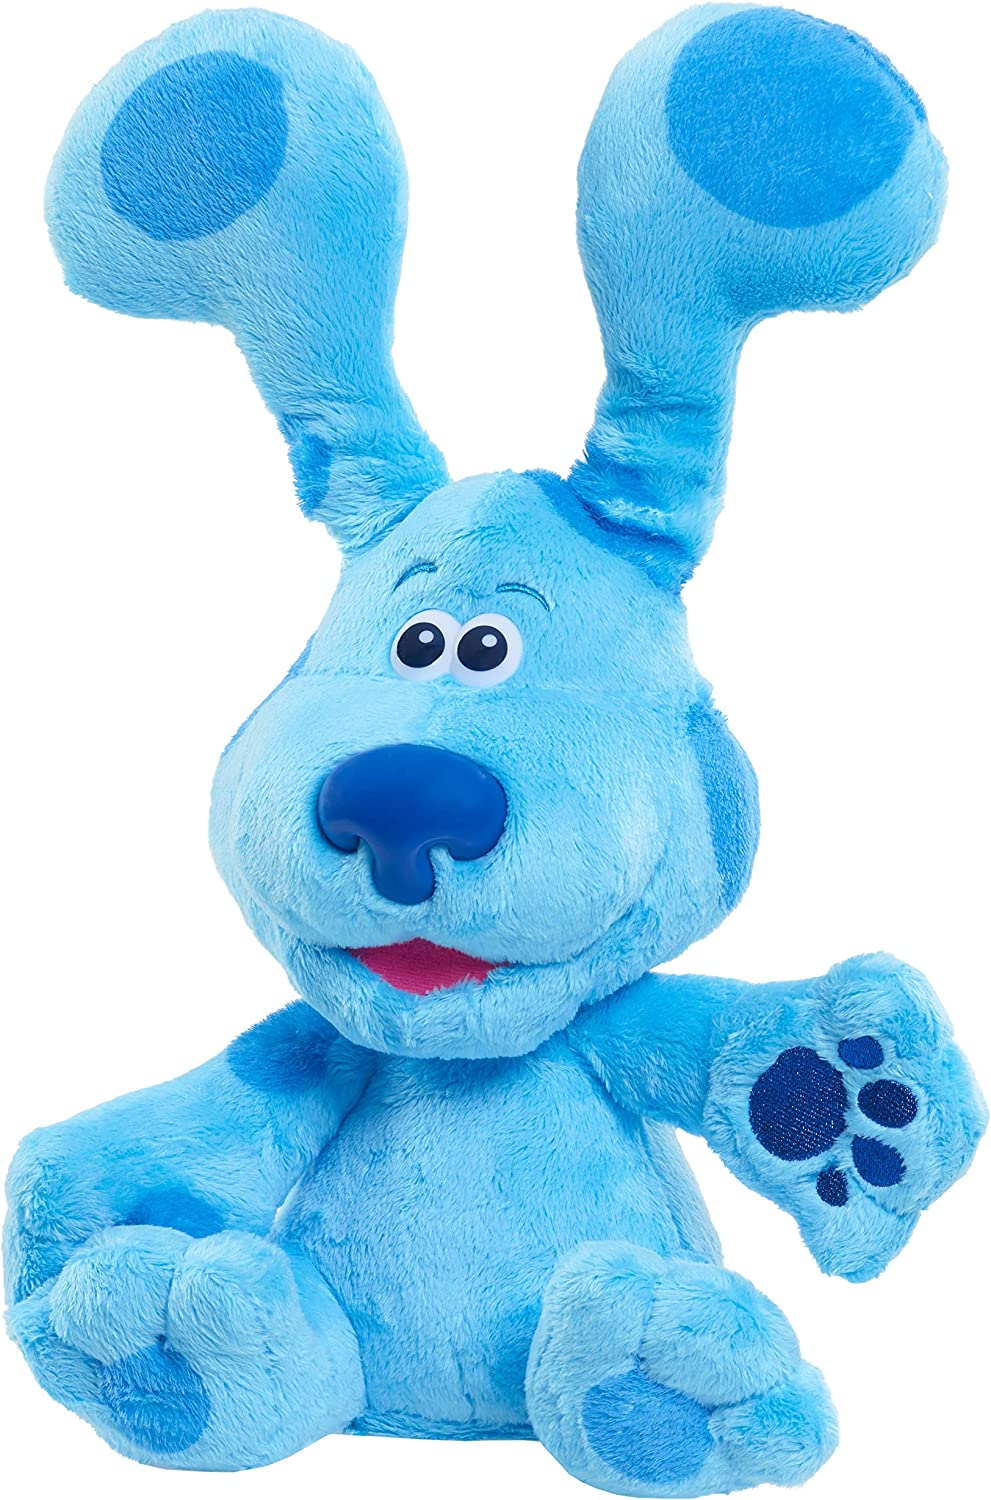 Blues Clues /& You BLUE /& MAGENTA Plush Stuffed Puppy Dogs New Nick Jr Toys